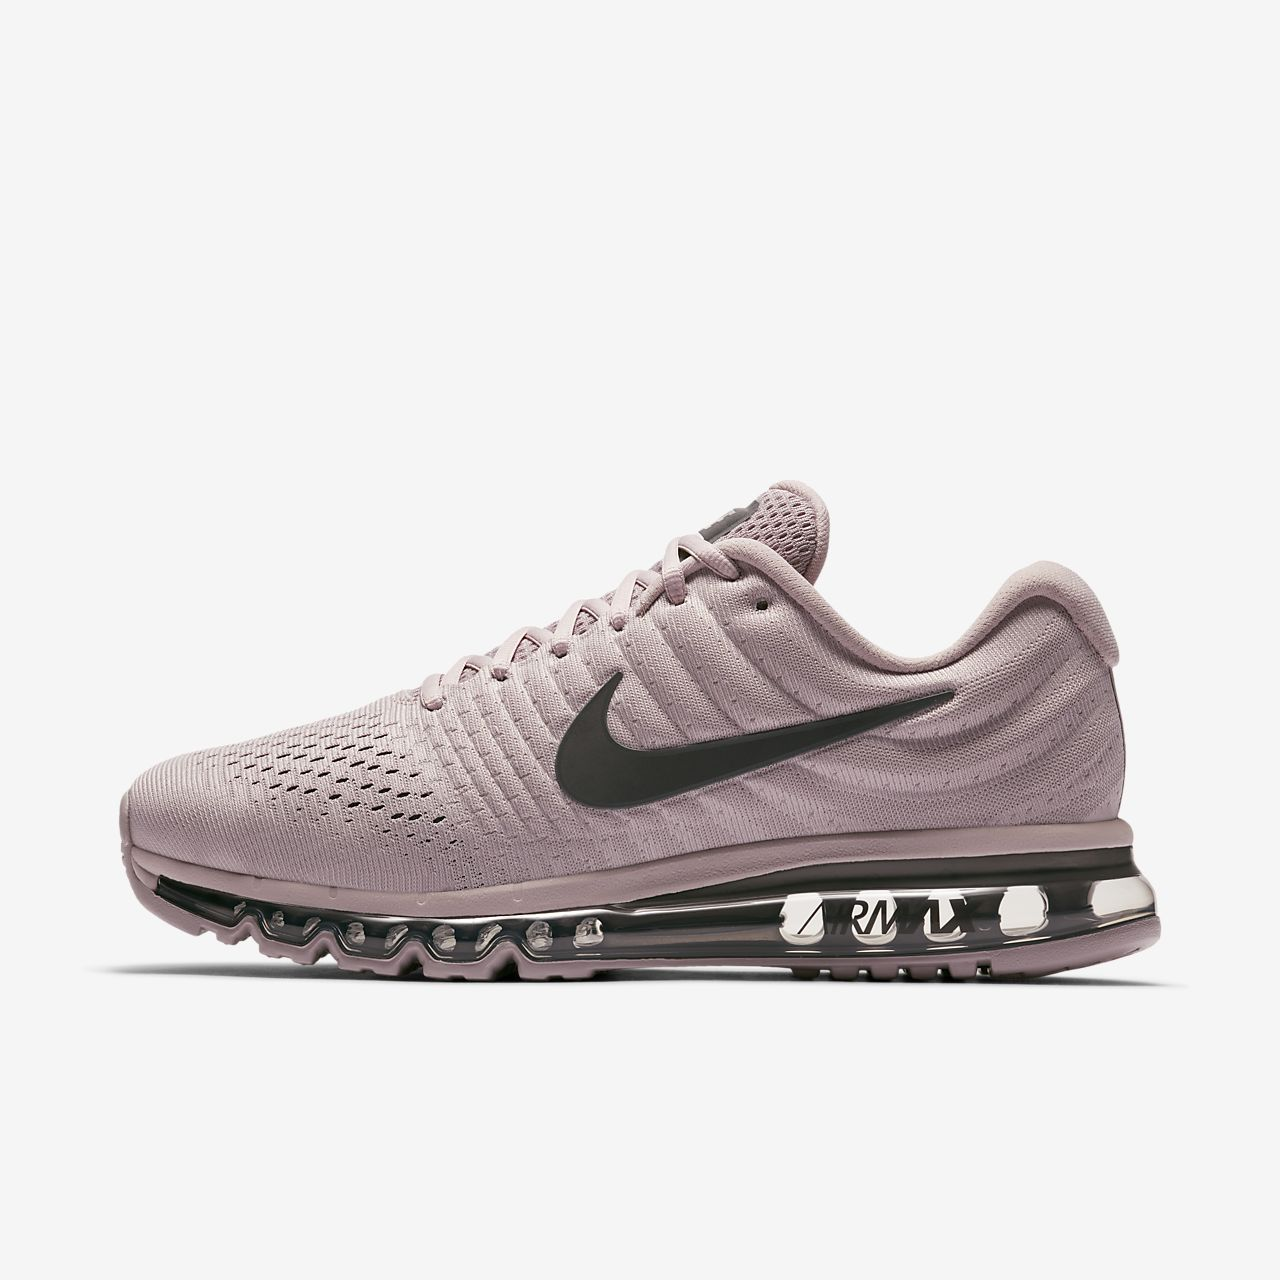 super popular 0c0c2 84bf7 Nike Air Max 2017 SE herresko